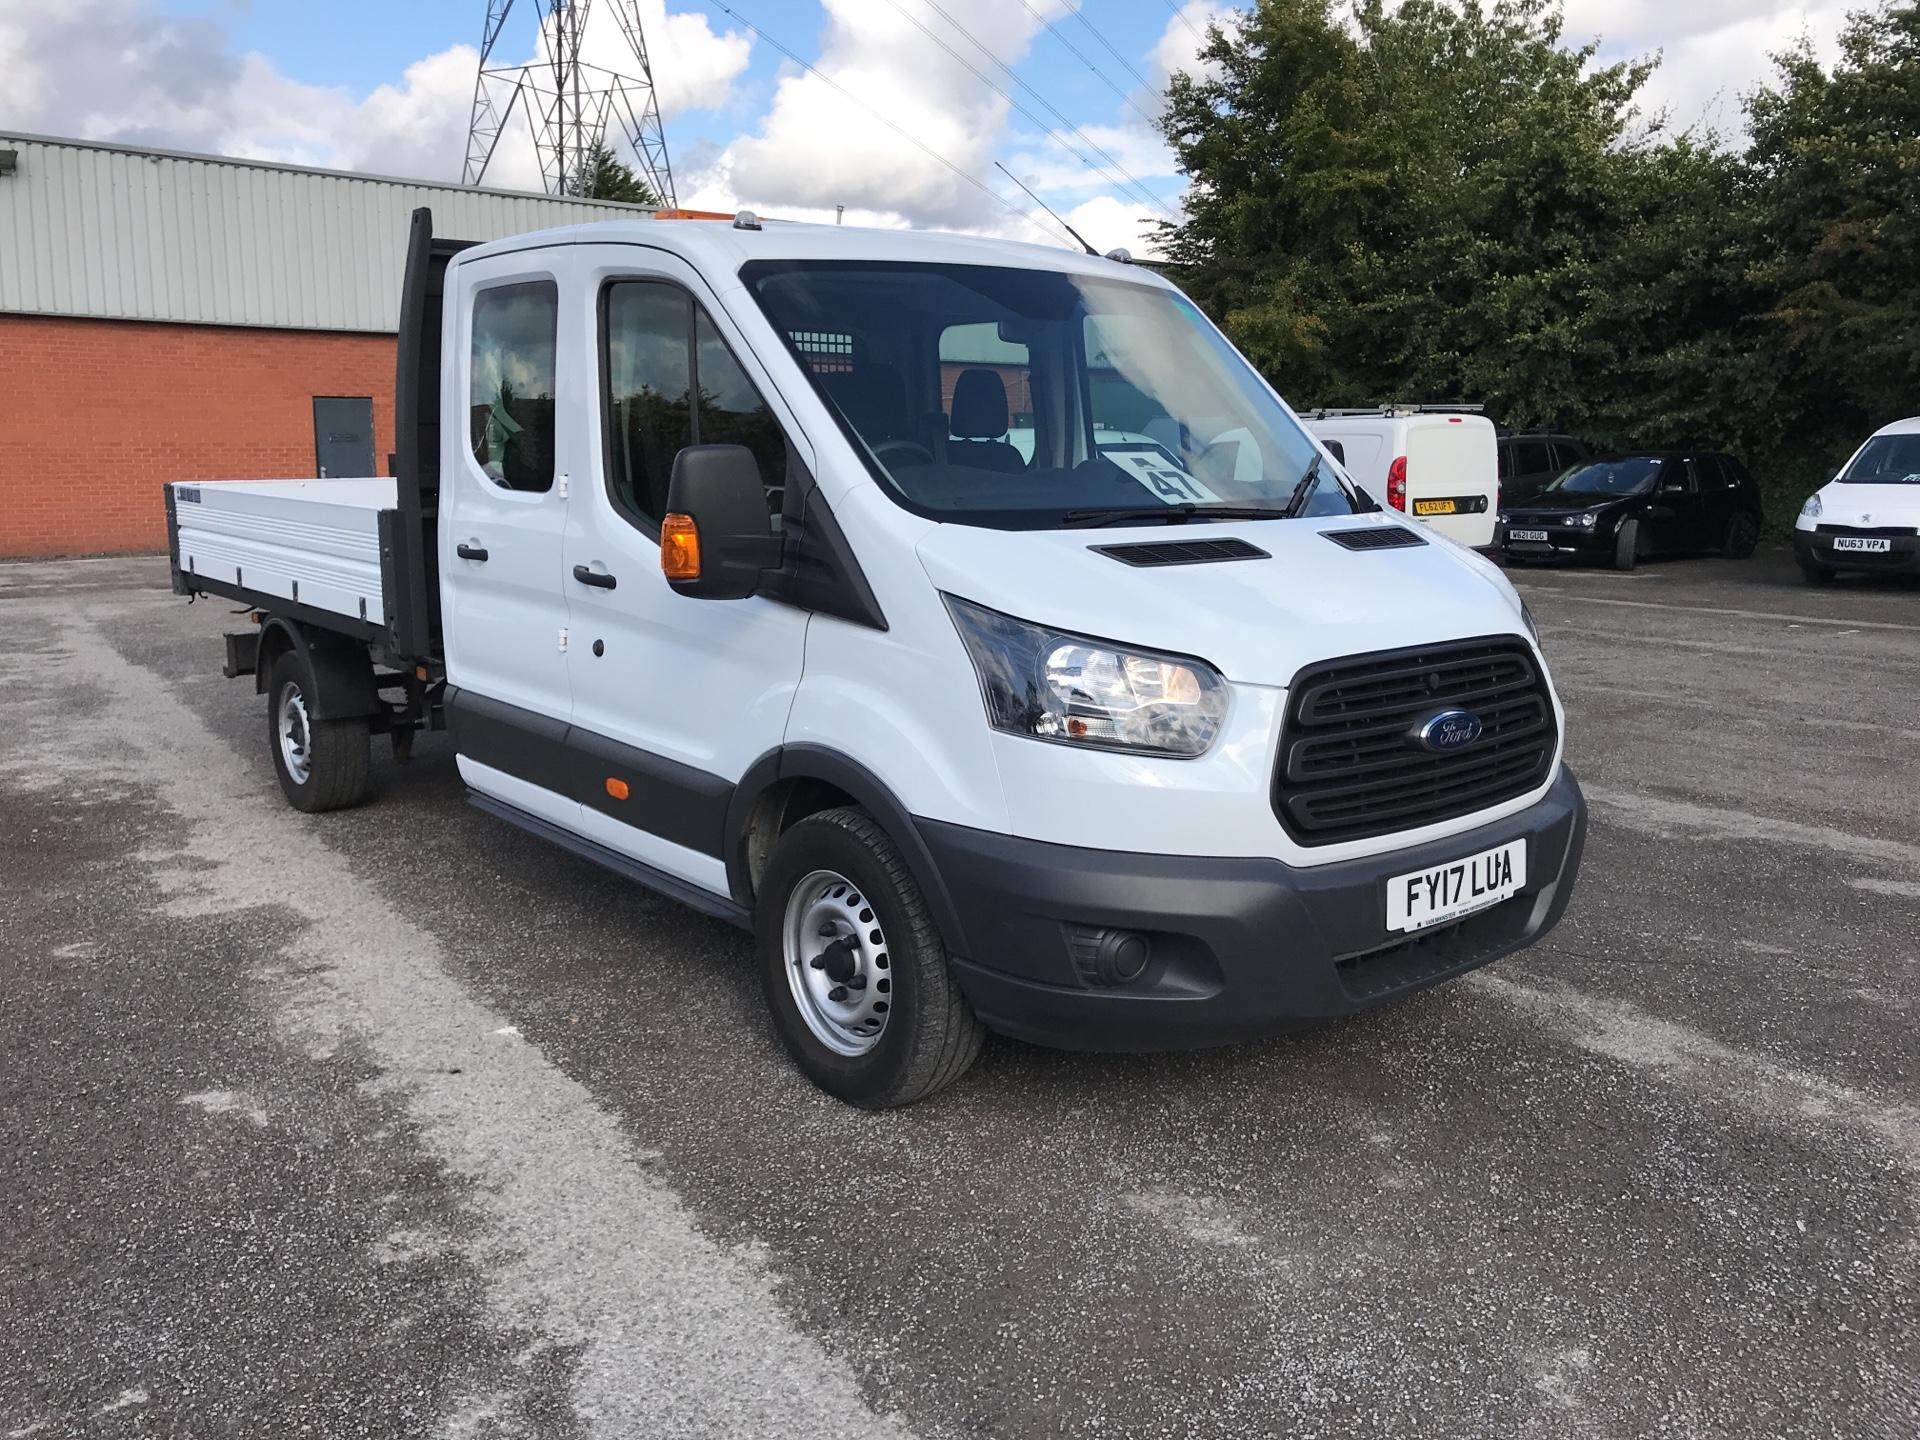 2017 Ford Transit T350 Double Cab Tipper Euro 6  (FY17LUA)